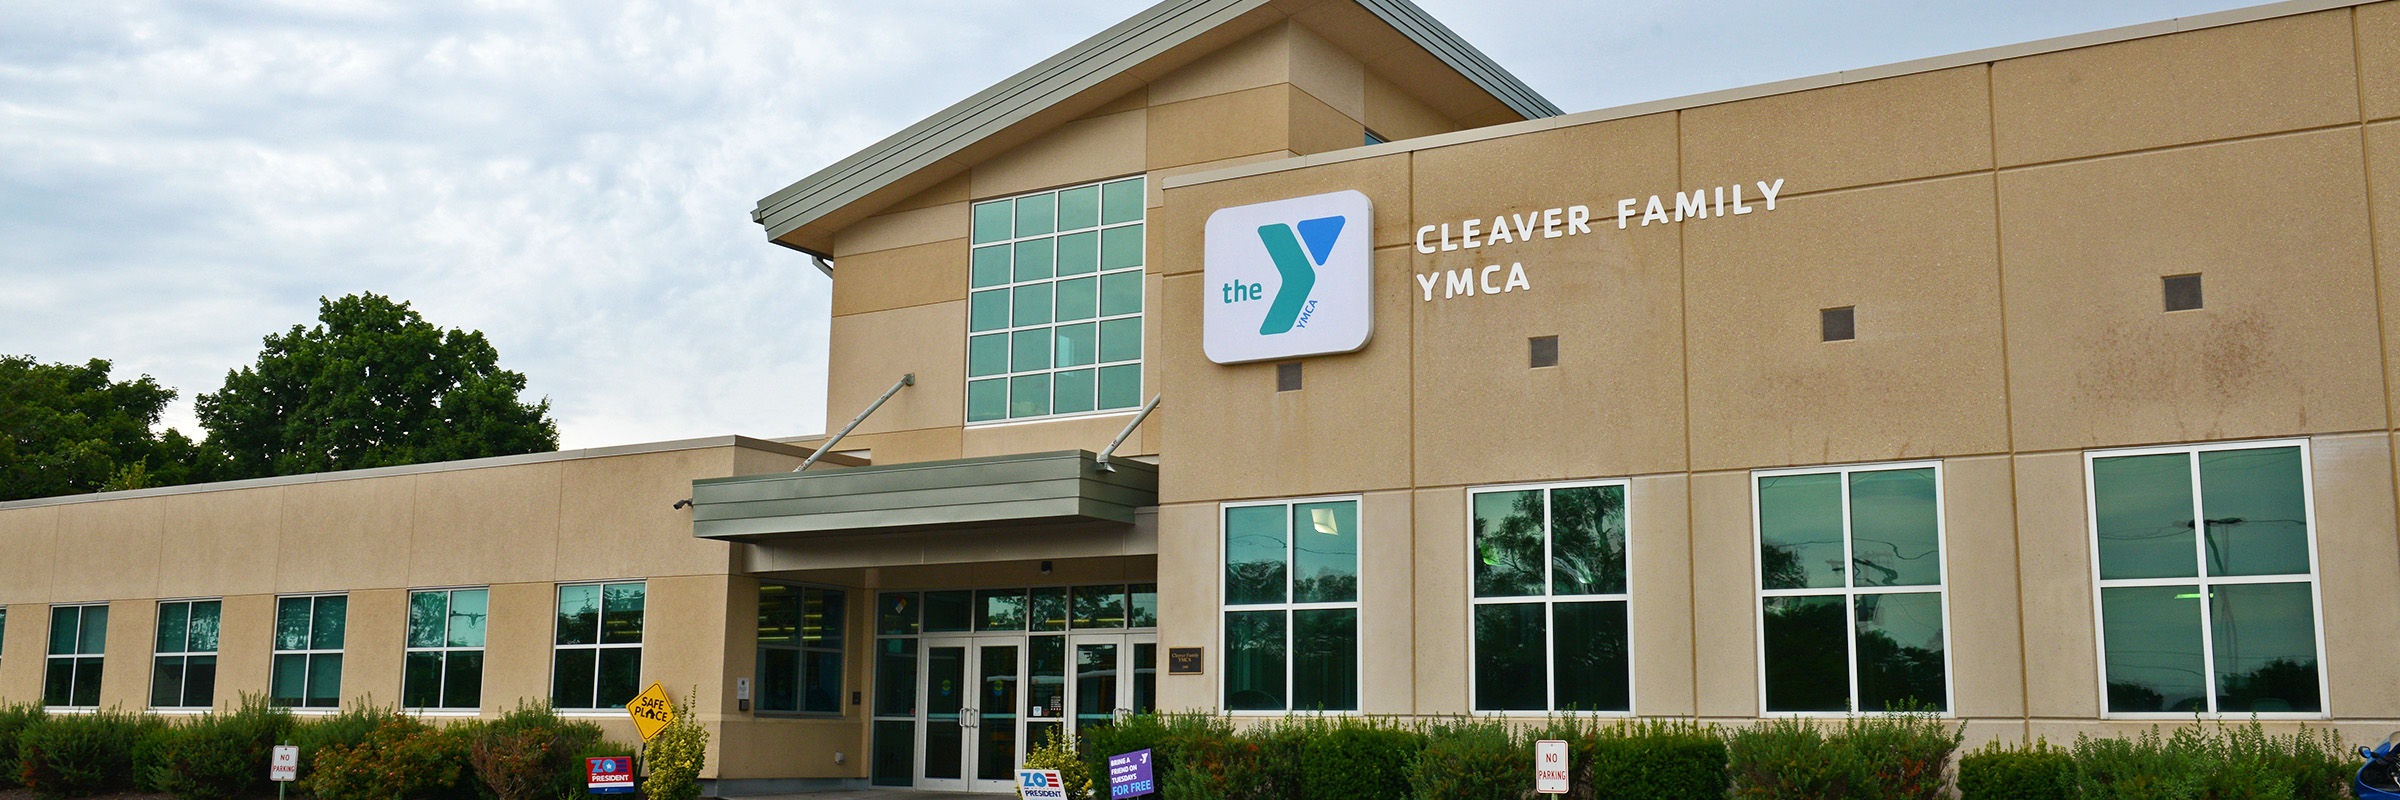 Cleaver Family YMCA